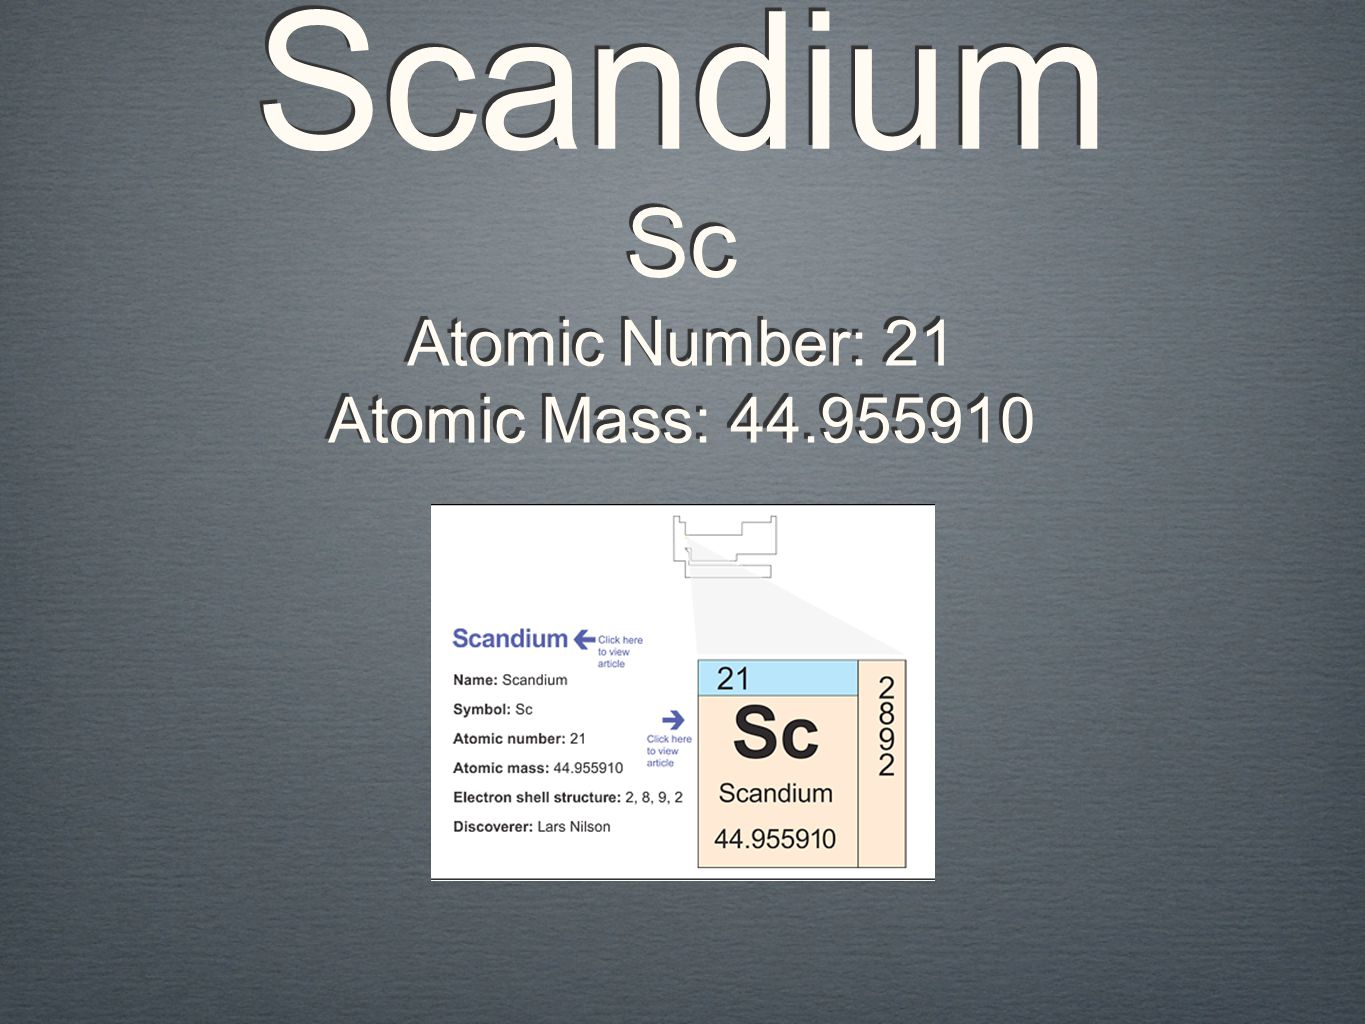 Scandium Sc Atomic Number: 21 Atomic Mass: 44.955910